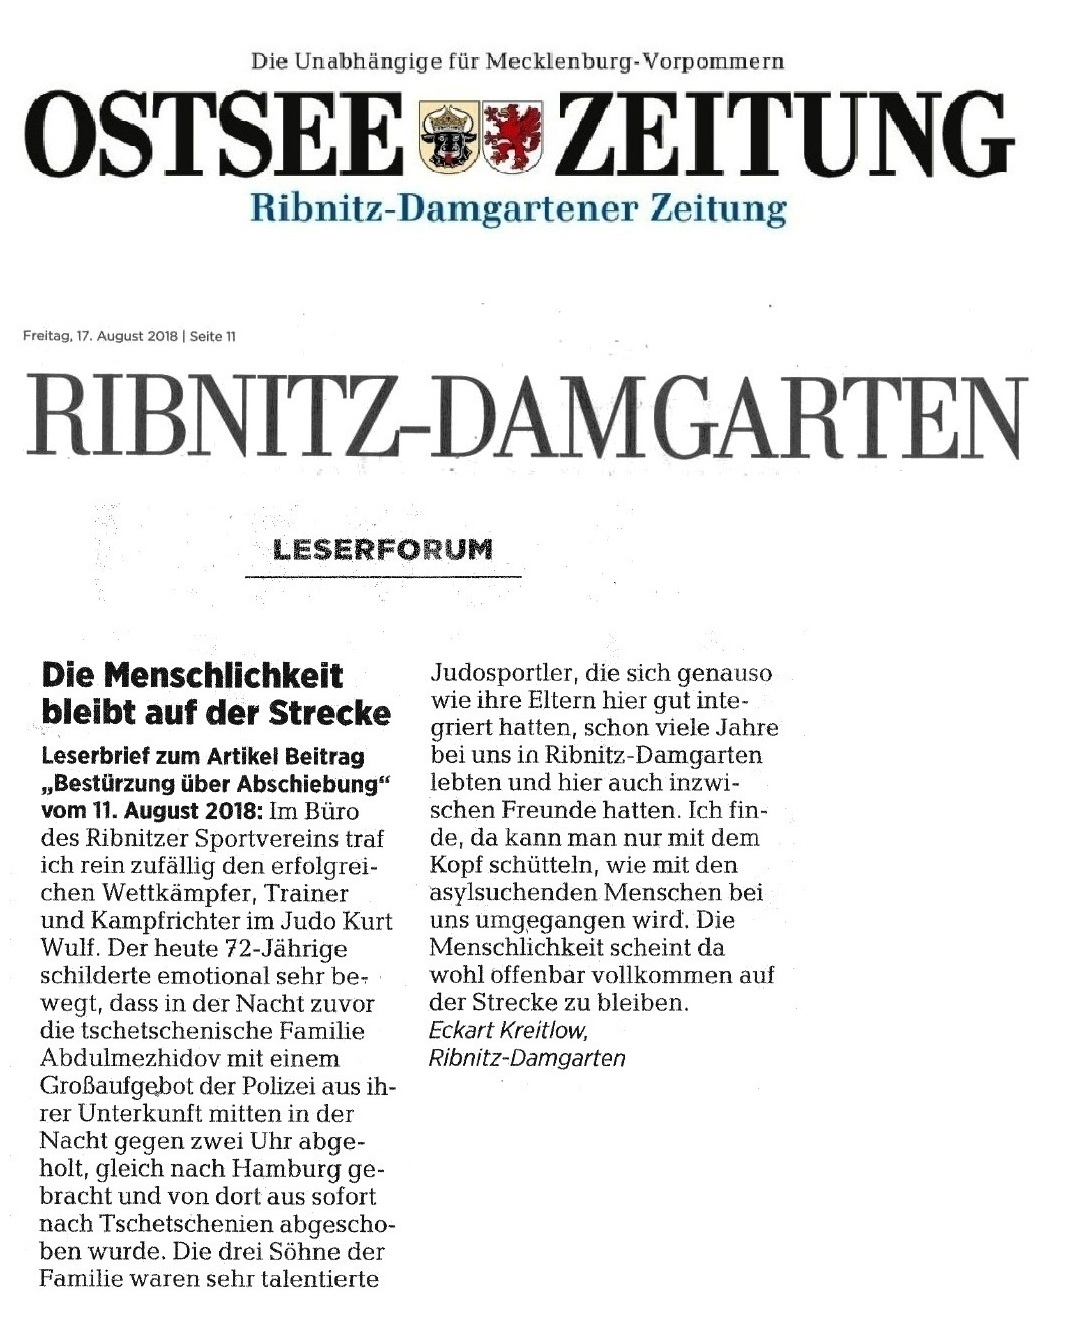 OZ-Leserbrief von Eckart Kreitlow - Die Menschlichkeit bleibt auf der Strecke - veröffentlicht in der Ribnitz-Damgartener Ausgabe Freitag, 17. August 2018 auf Seite 11 unter Leserforum